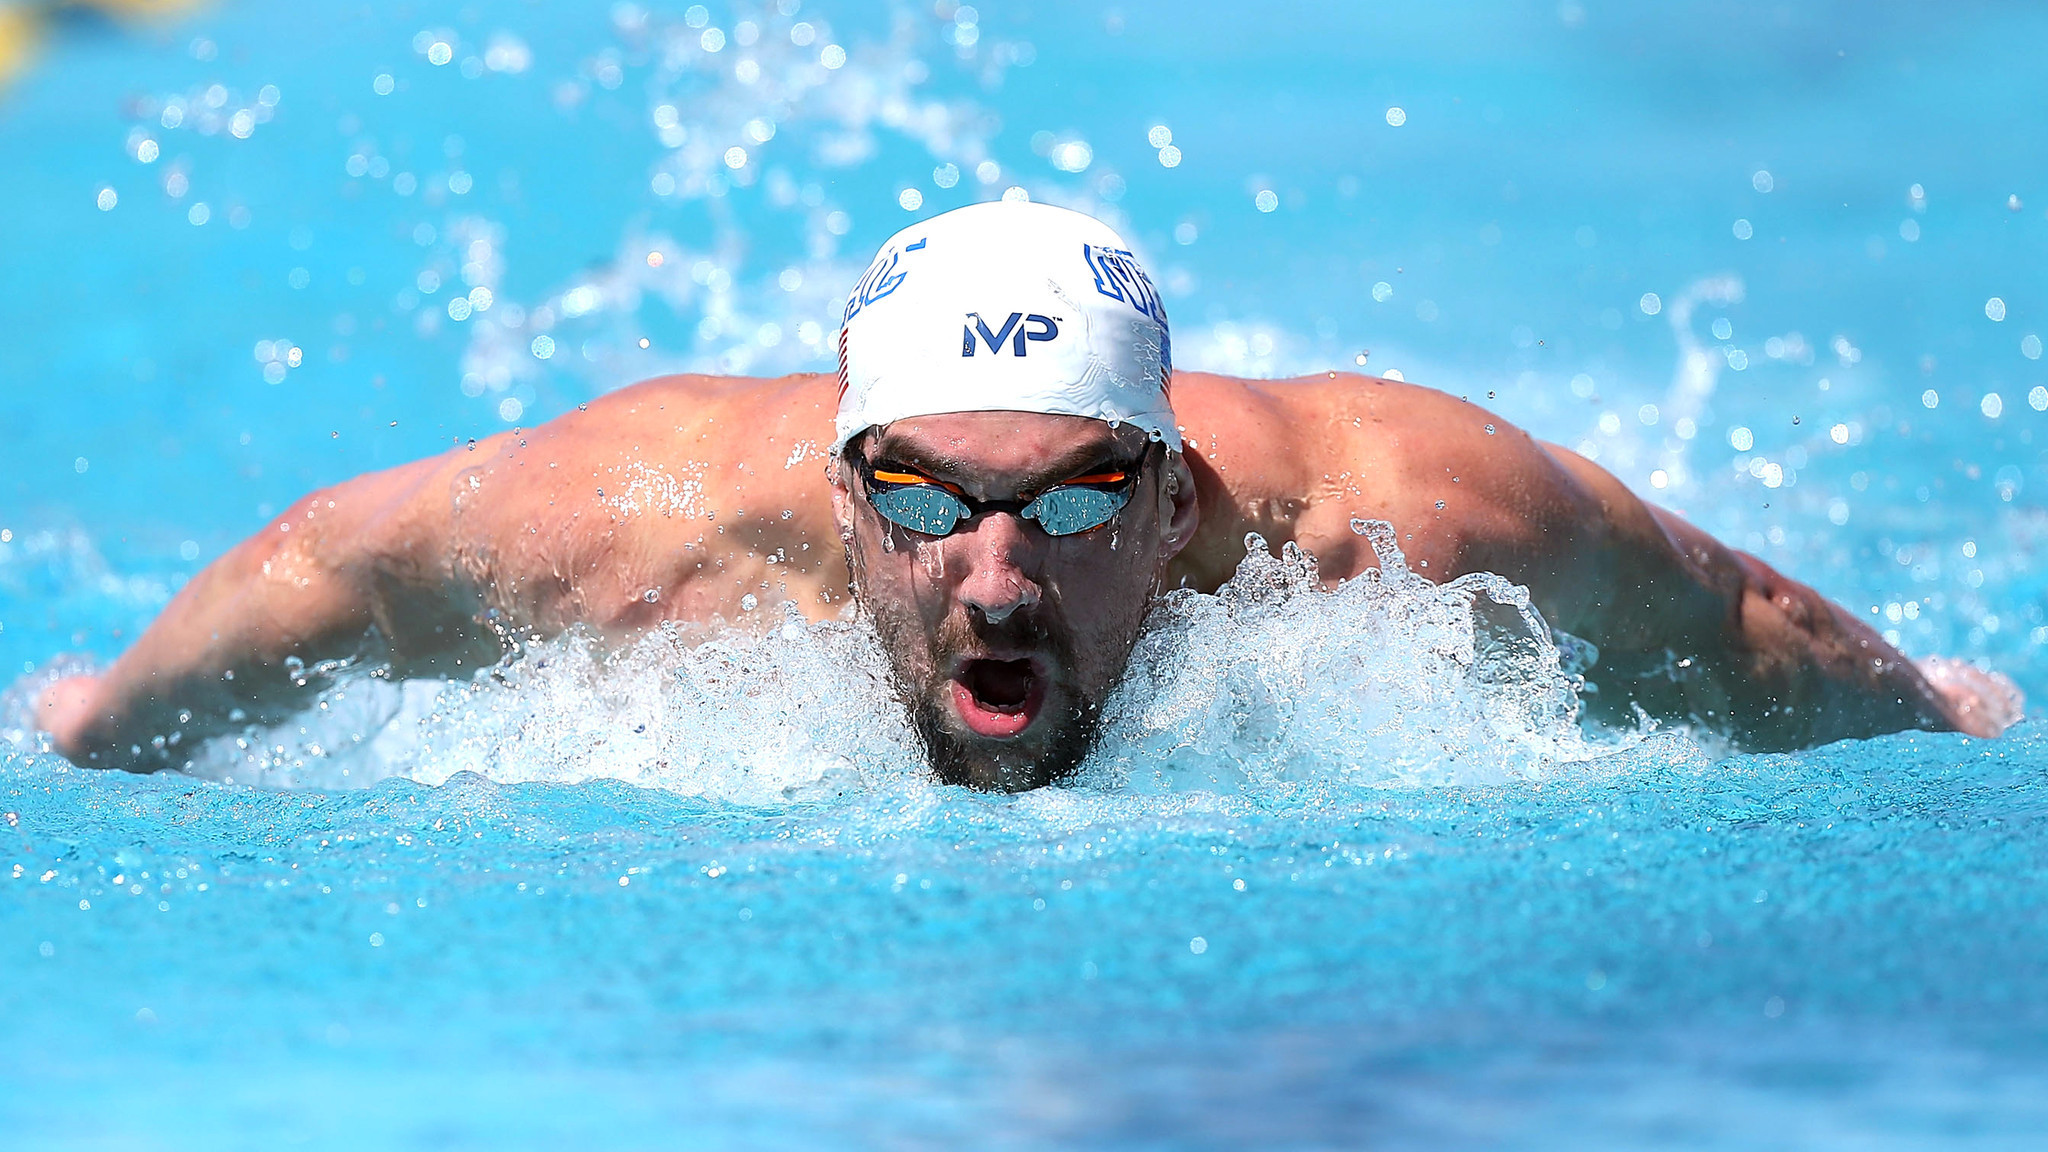 Michael phelps wallpapers images photos pictures backgrounds for Swimming images